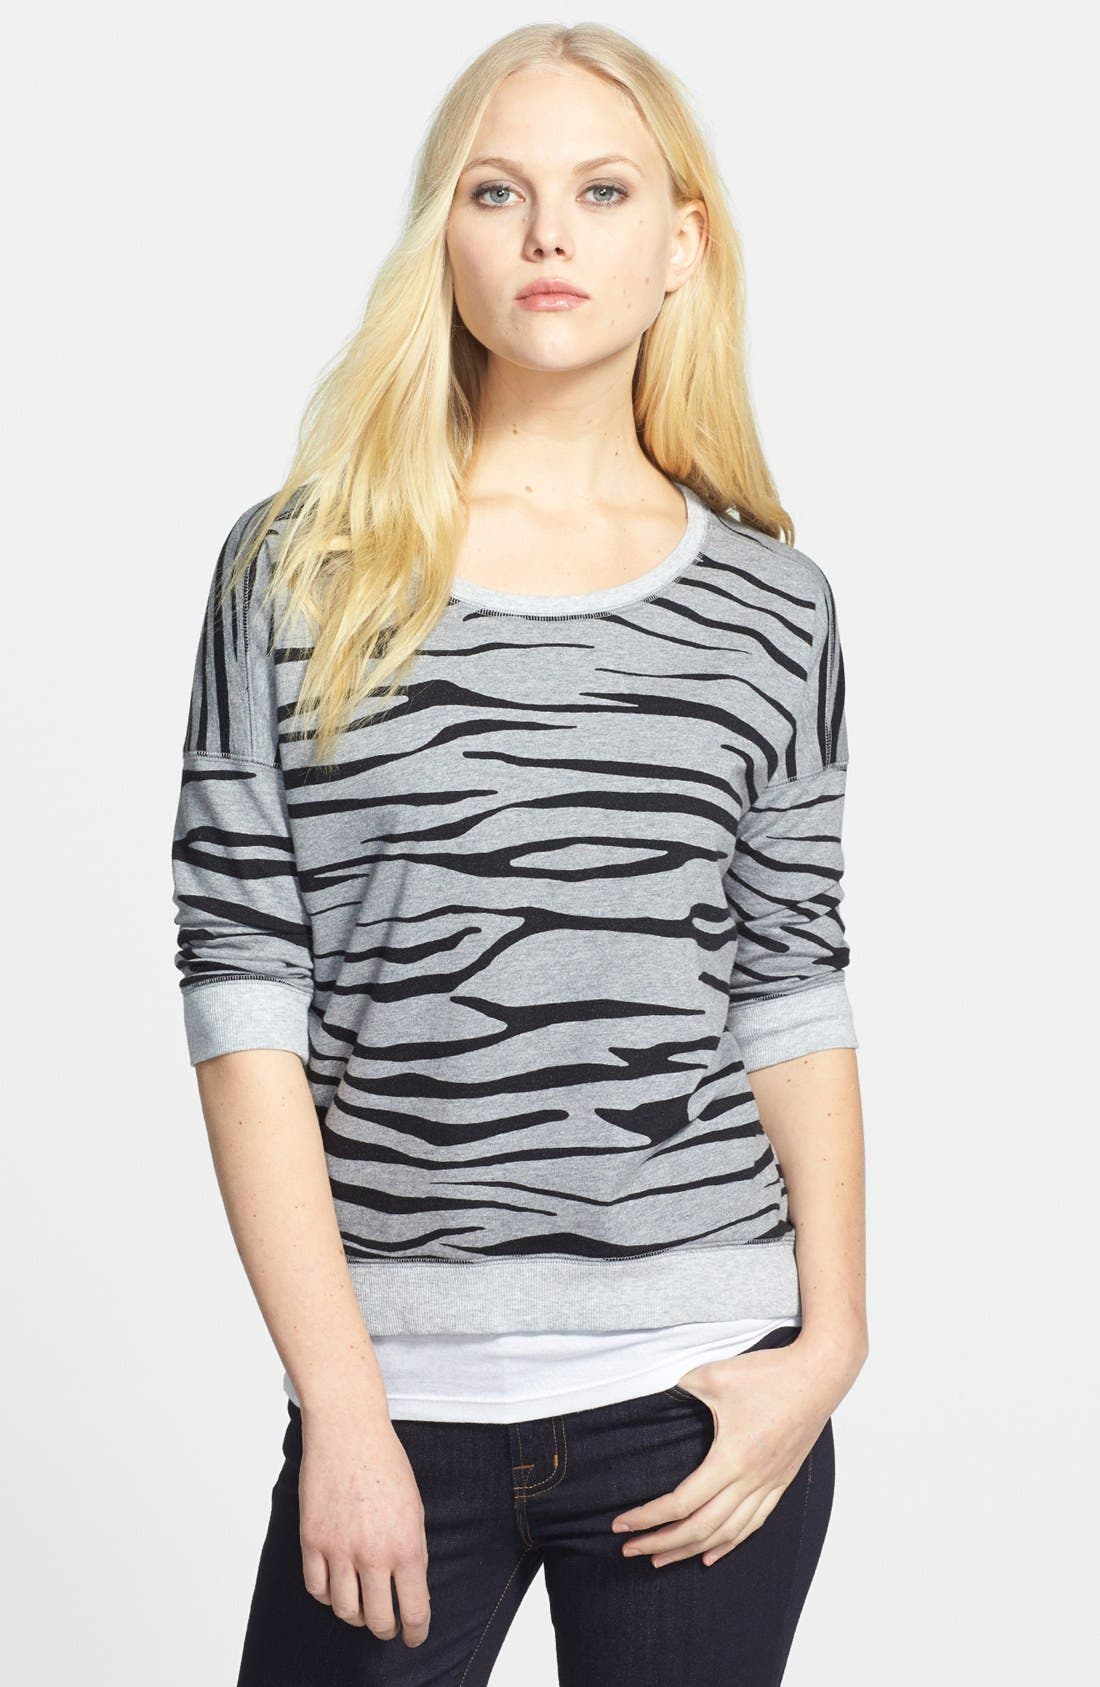 Alternate Image 1 Selected - Two by Vince Camuto Zebra Print Sweatshirt